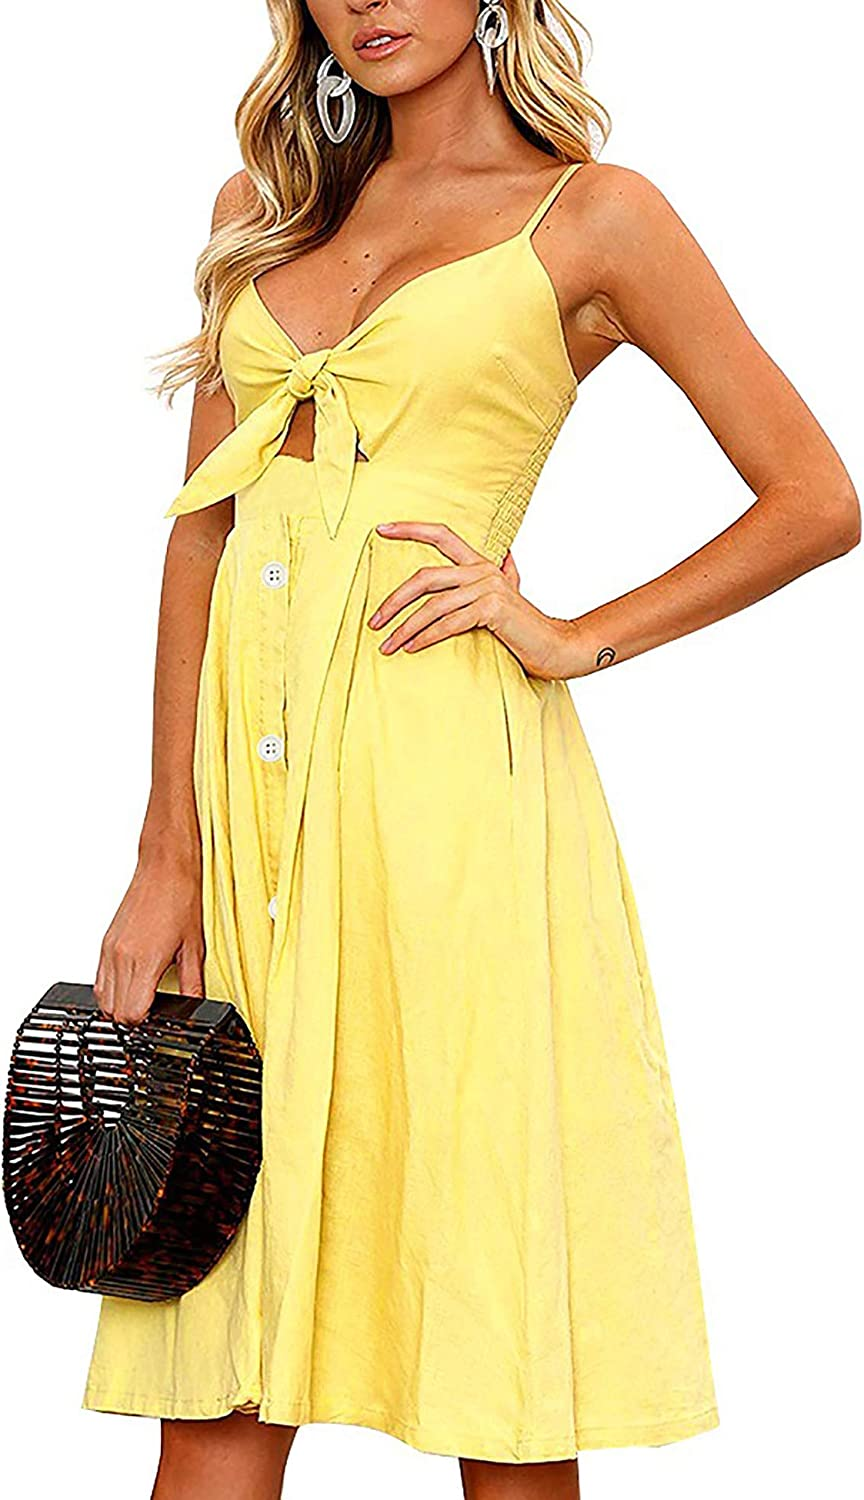 ECOWISH Women Dresses Summer Tie Front V-Neck Spaghetti Strap Button Down A-Line Backless Swing Midi Dress